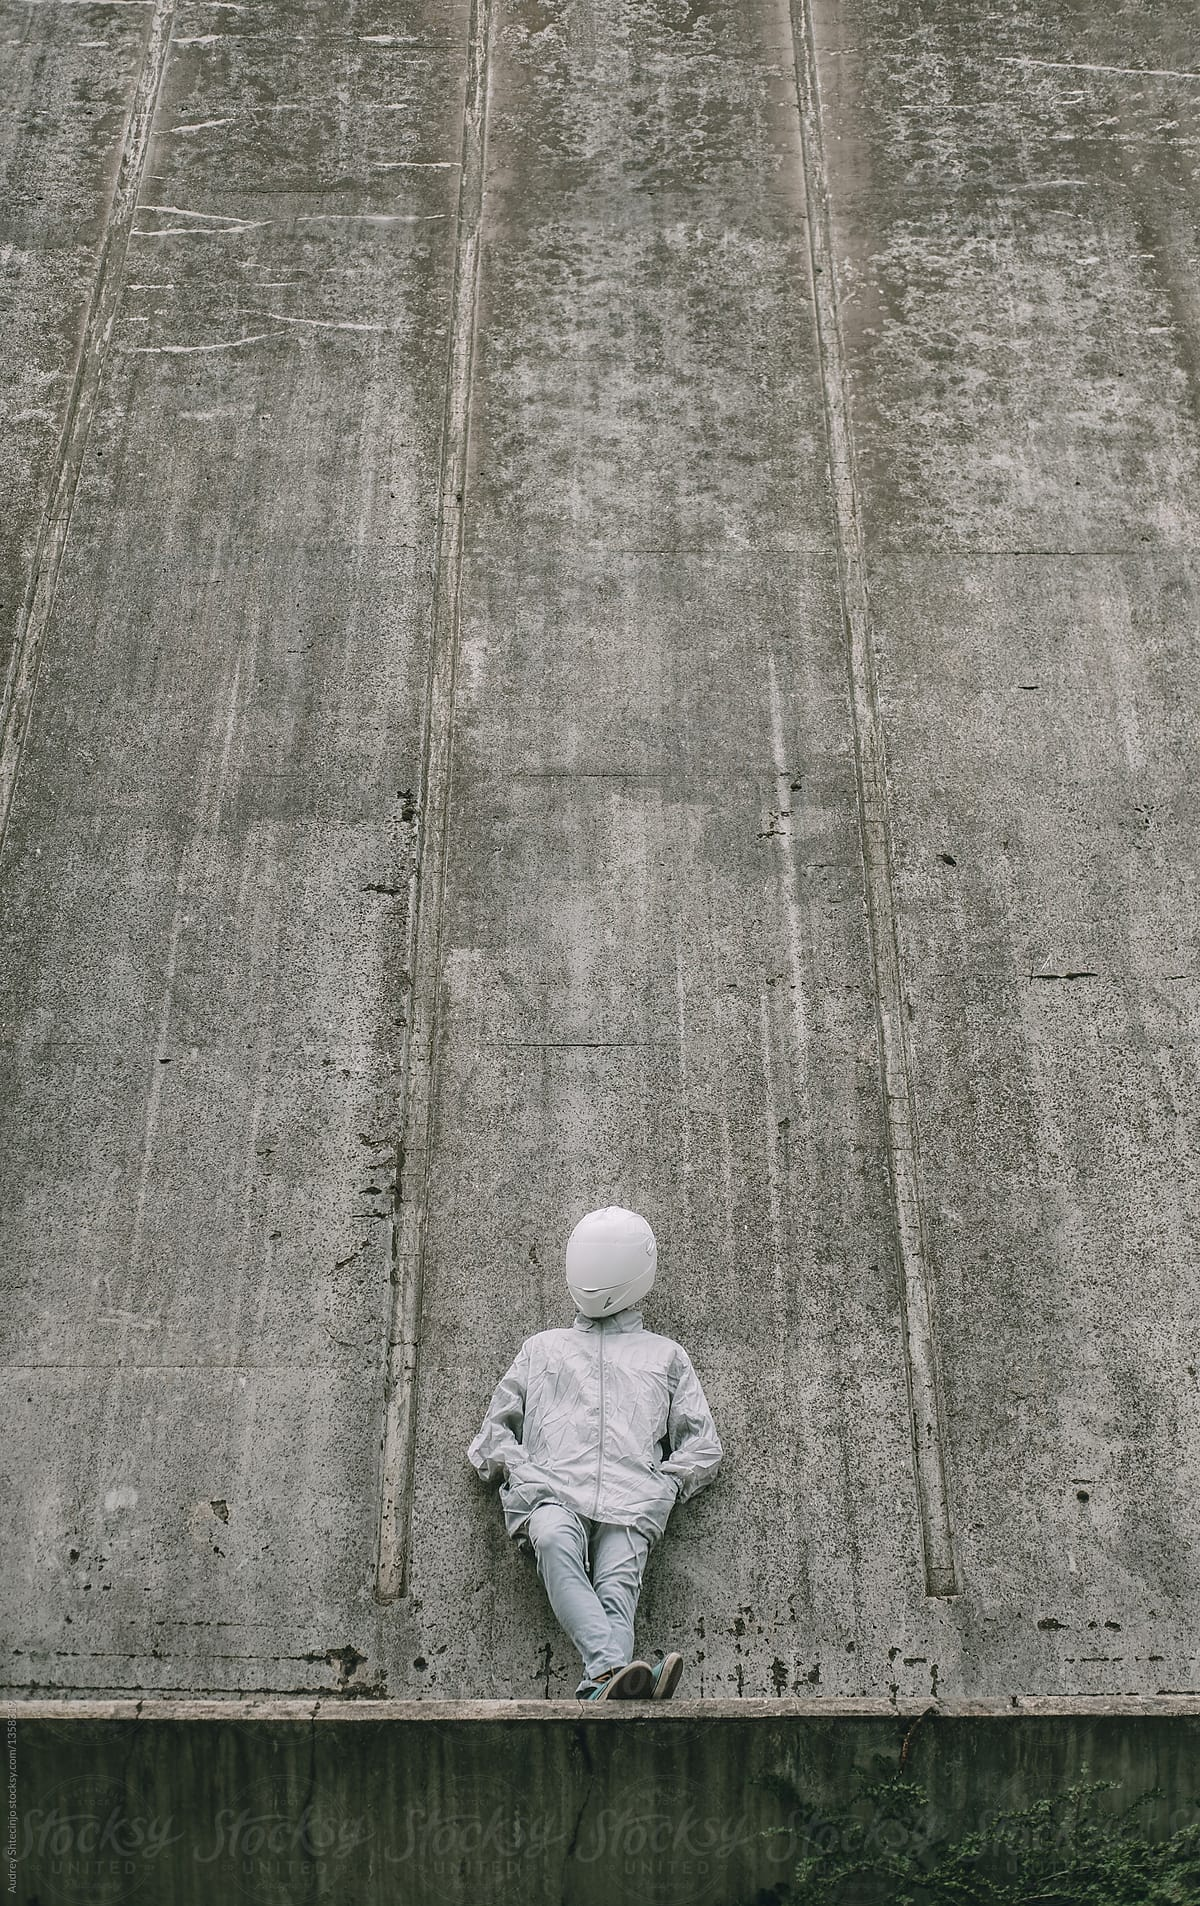 Stock Photo - Abstract Scene With Person With White Helmet/Mask And Silver  Jacket